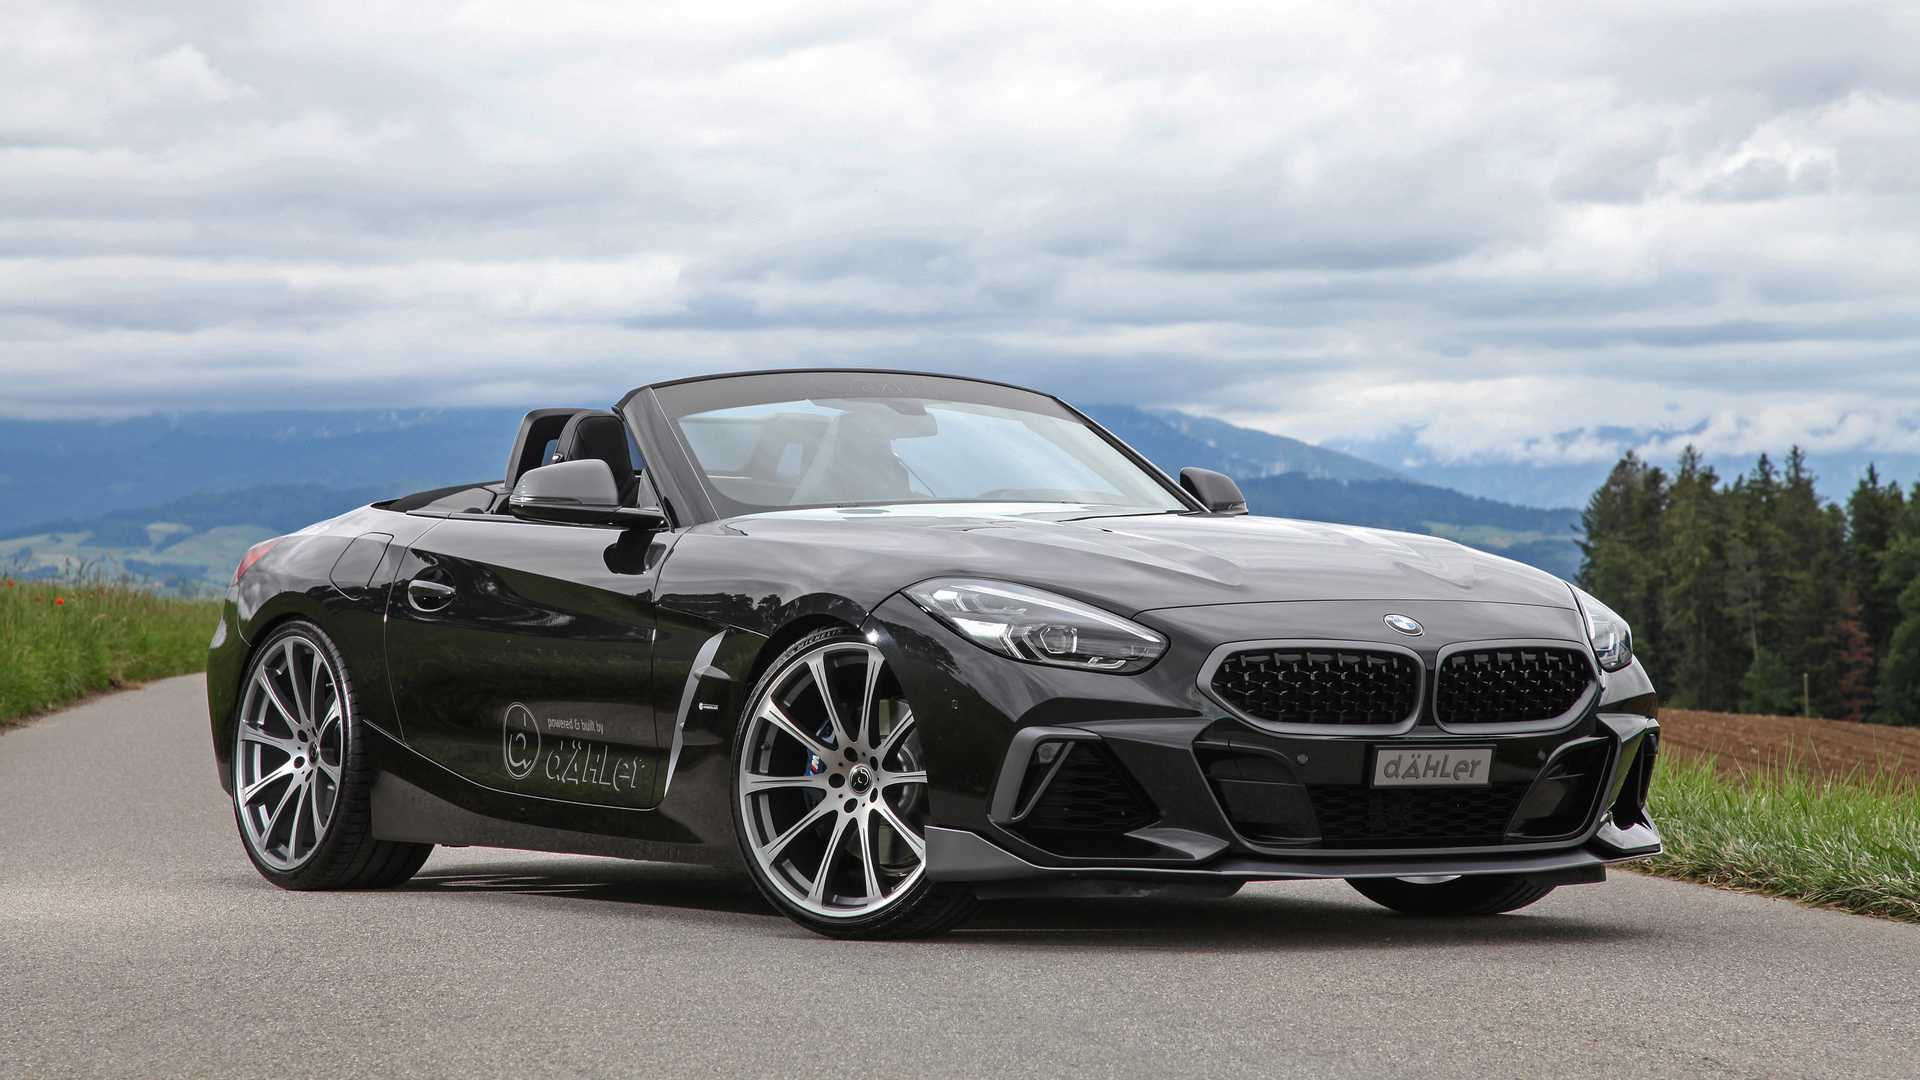 BMW-Z4-M40i-by-Dahler-1